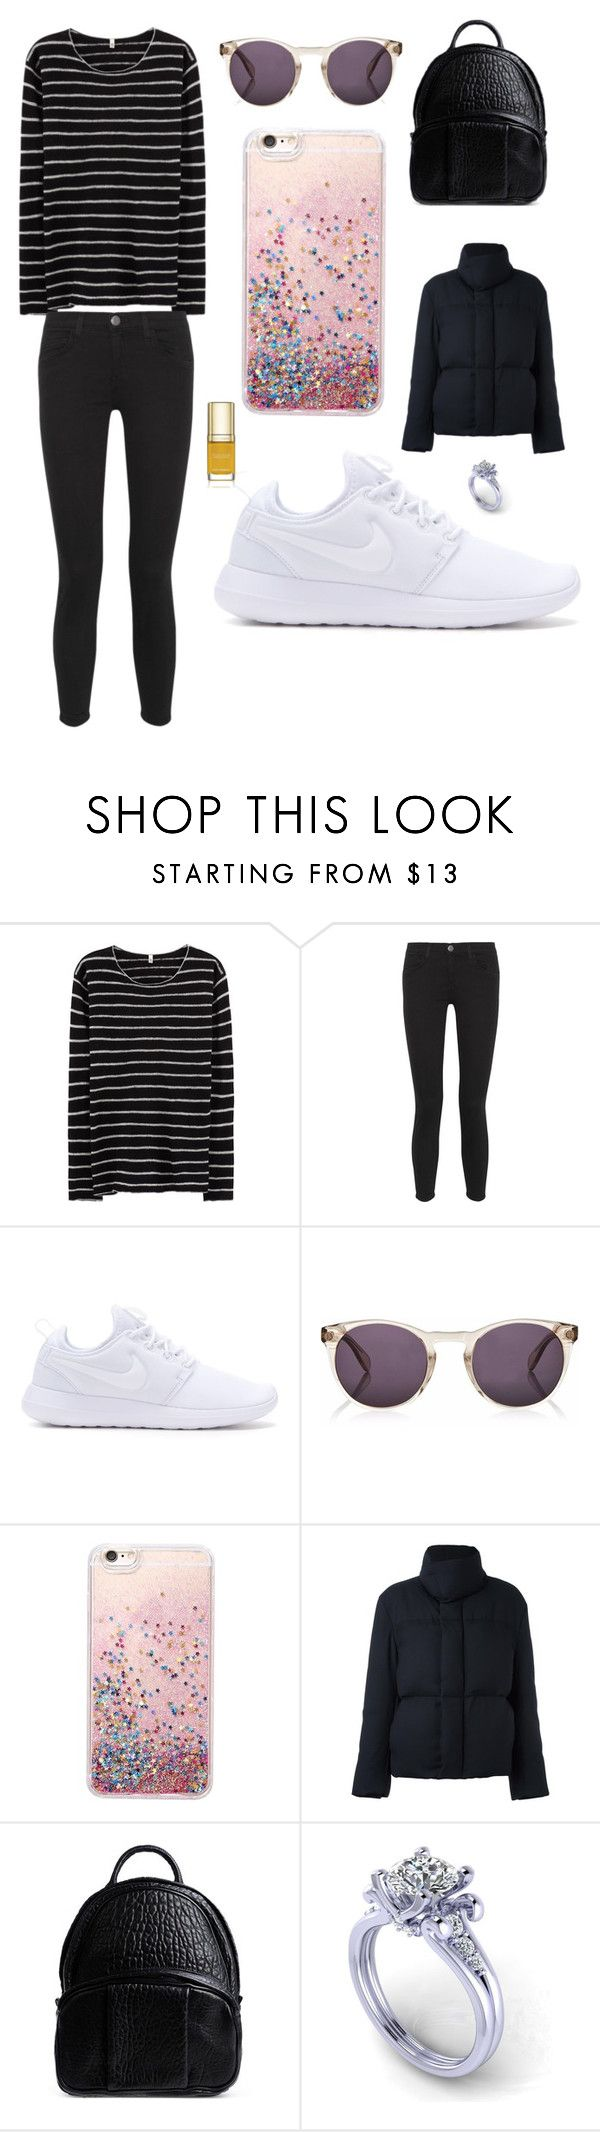 """""""Sans titre #2305"""" by merveille67120 ❤ liked on Polyvore featuring R13, Current/Elliott, NIKE, Finlay & Co., Paul Smith, Alexander Wang and Dolce&Gabbana"""